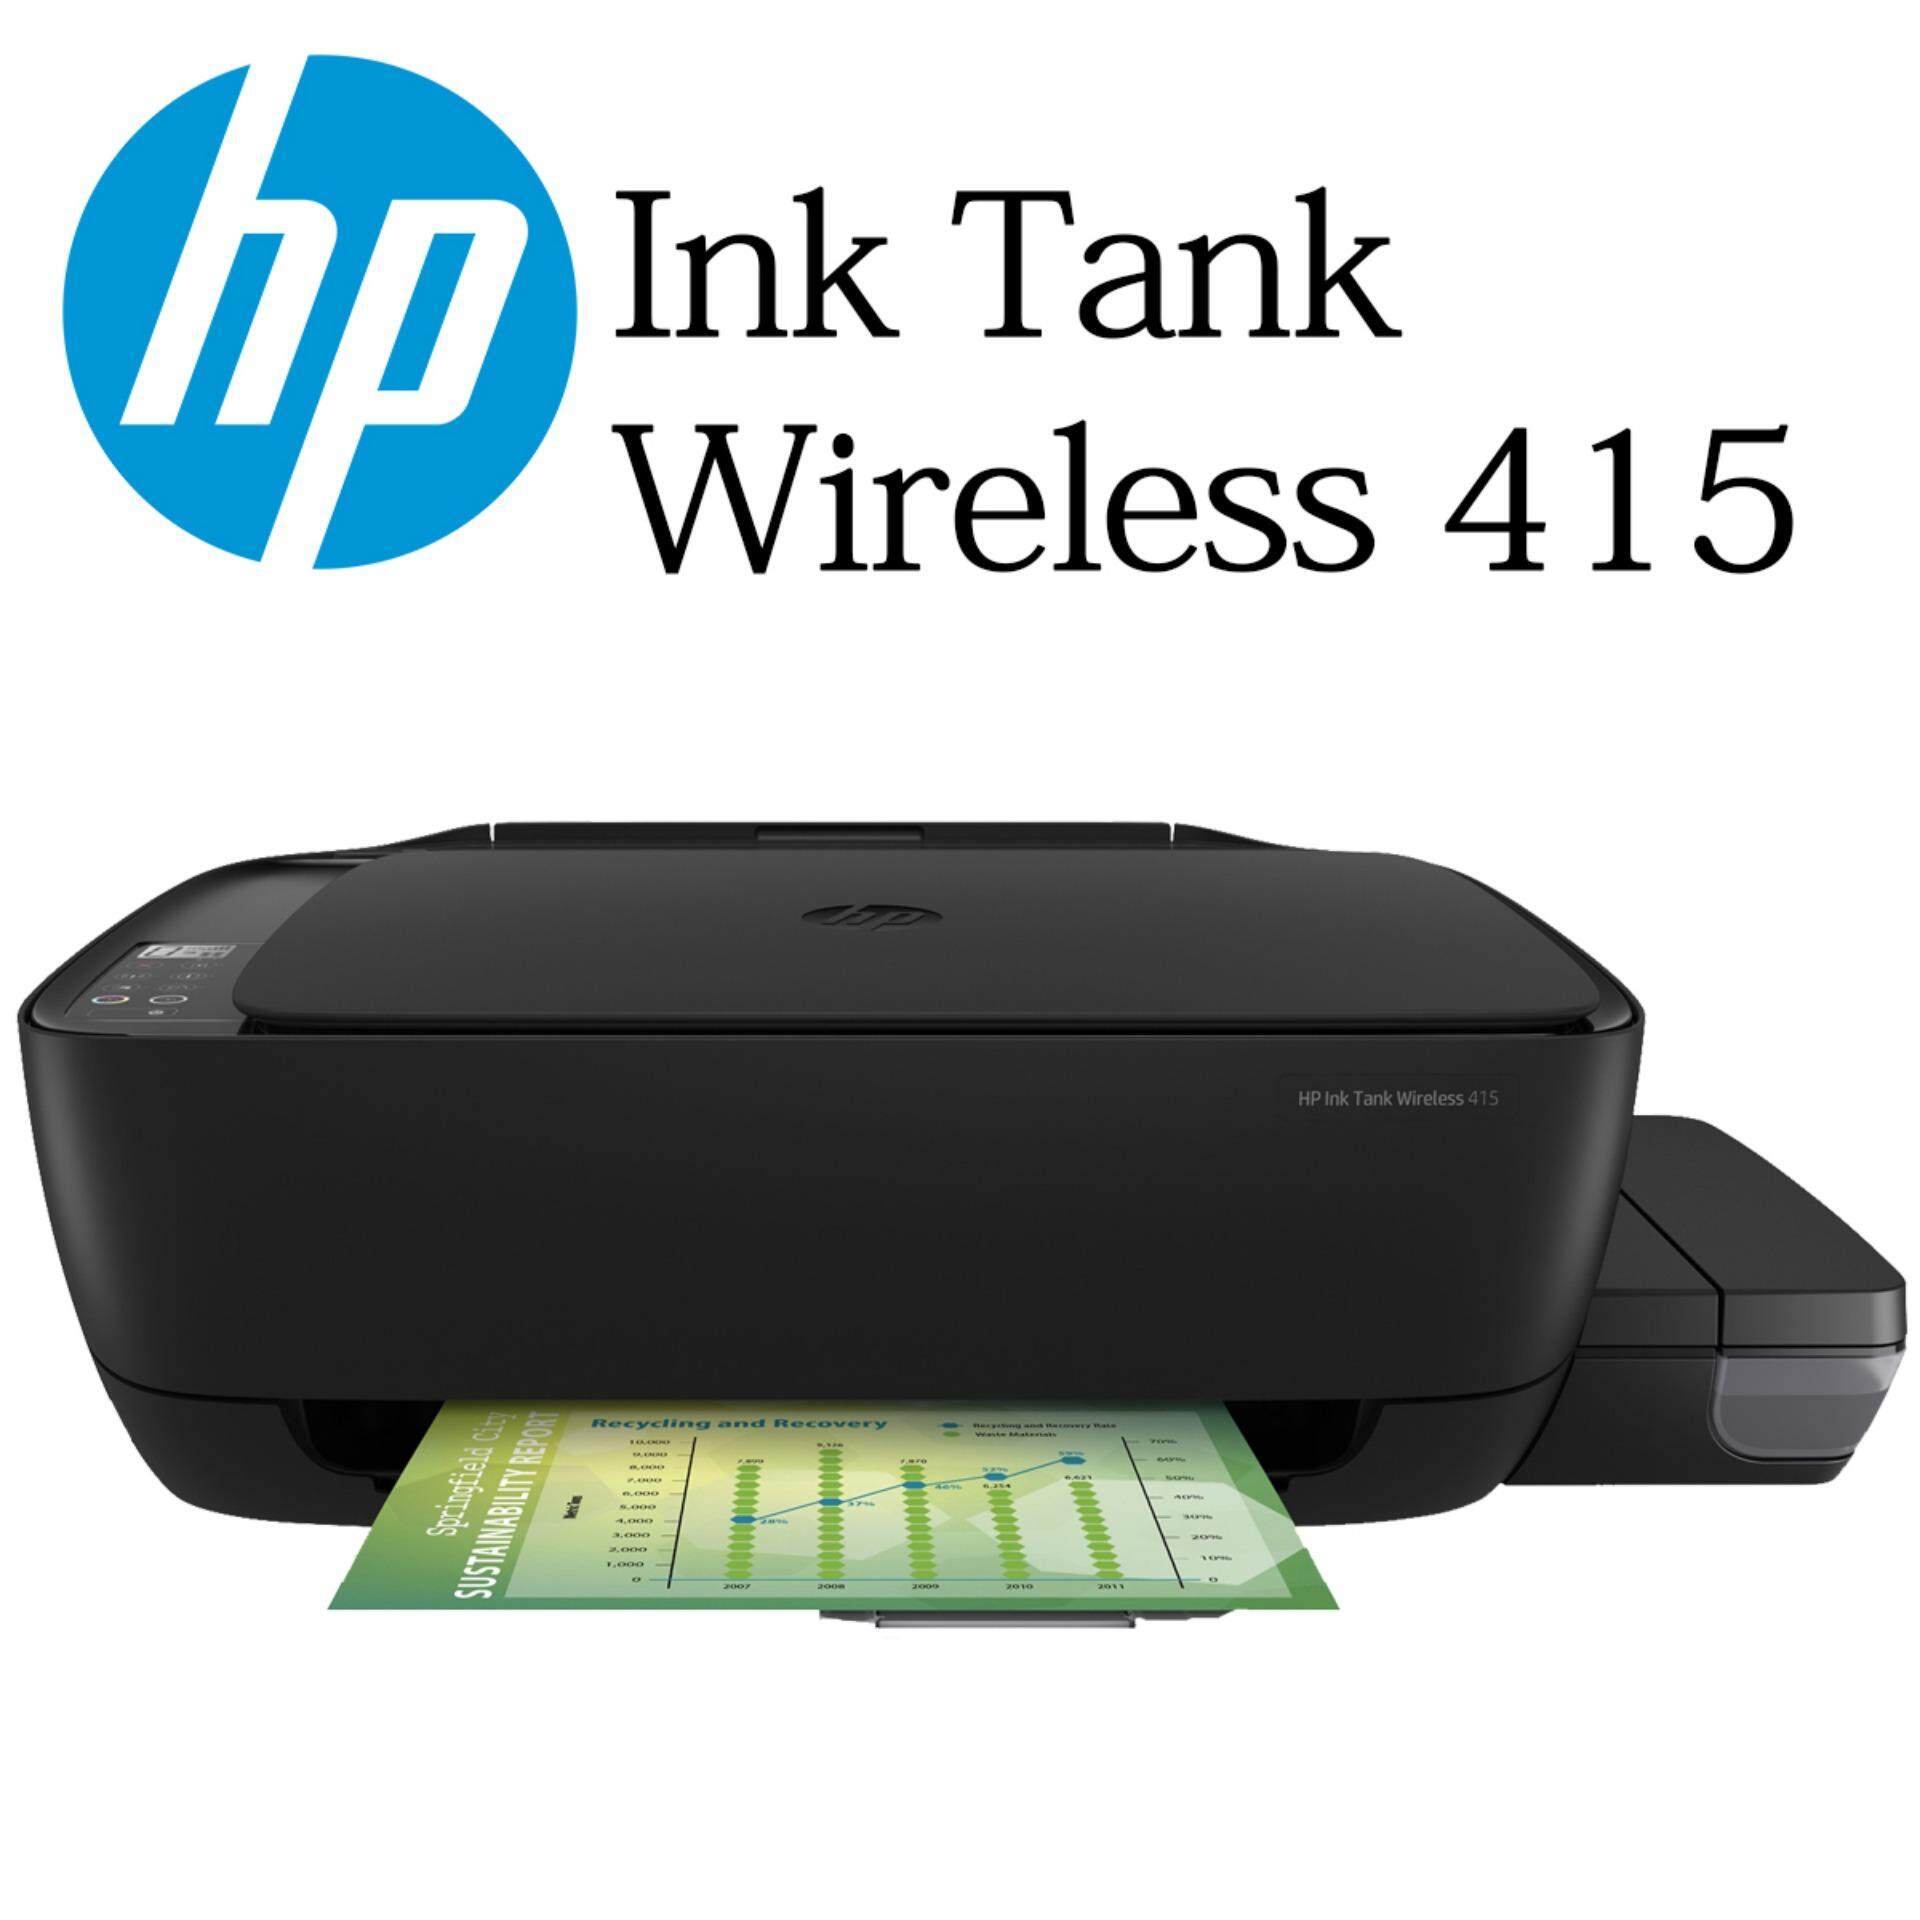 Hp Ink Jet For The Best Prices In Malaysia Tinta 680 Colour Cartridge Original Tank Wireless 415 Inkjet Printer Print Scan Copy Similar With Canon G3010